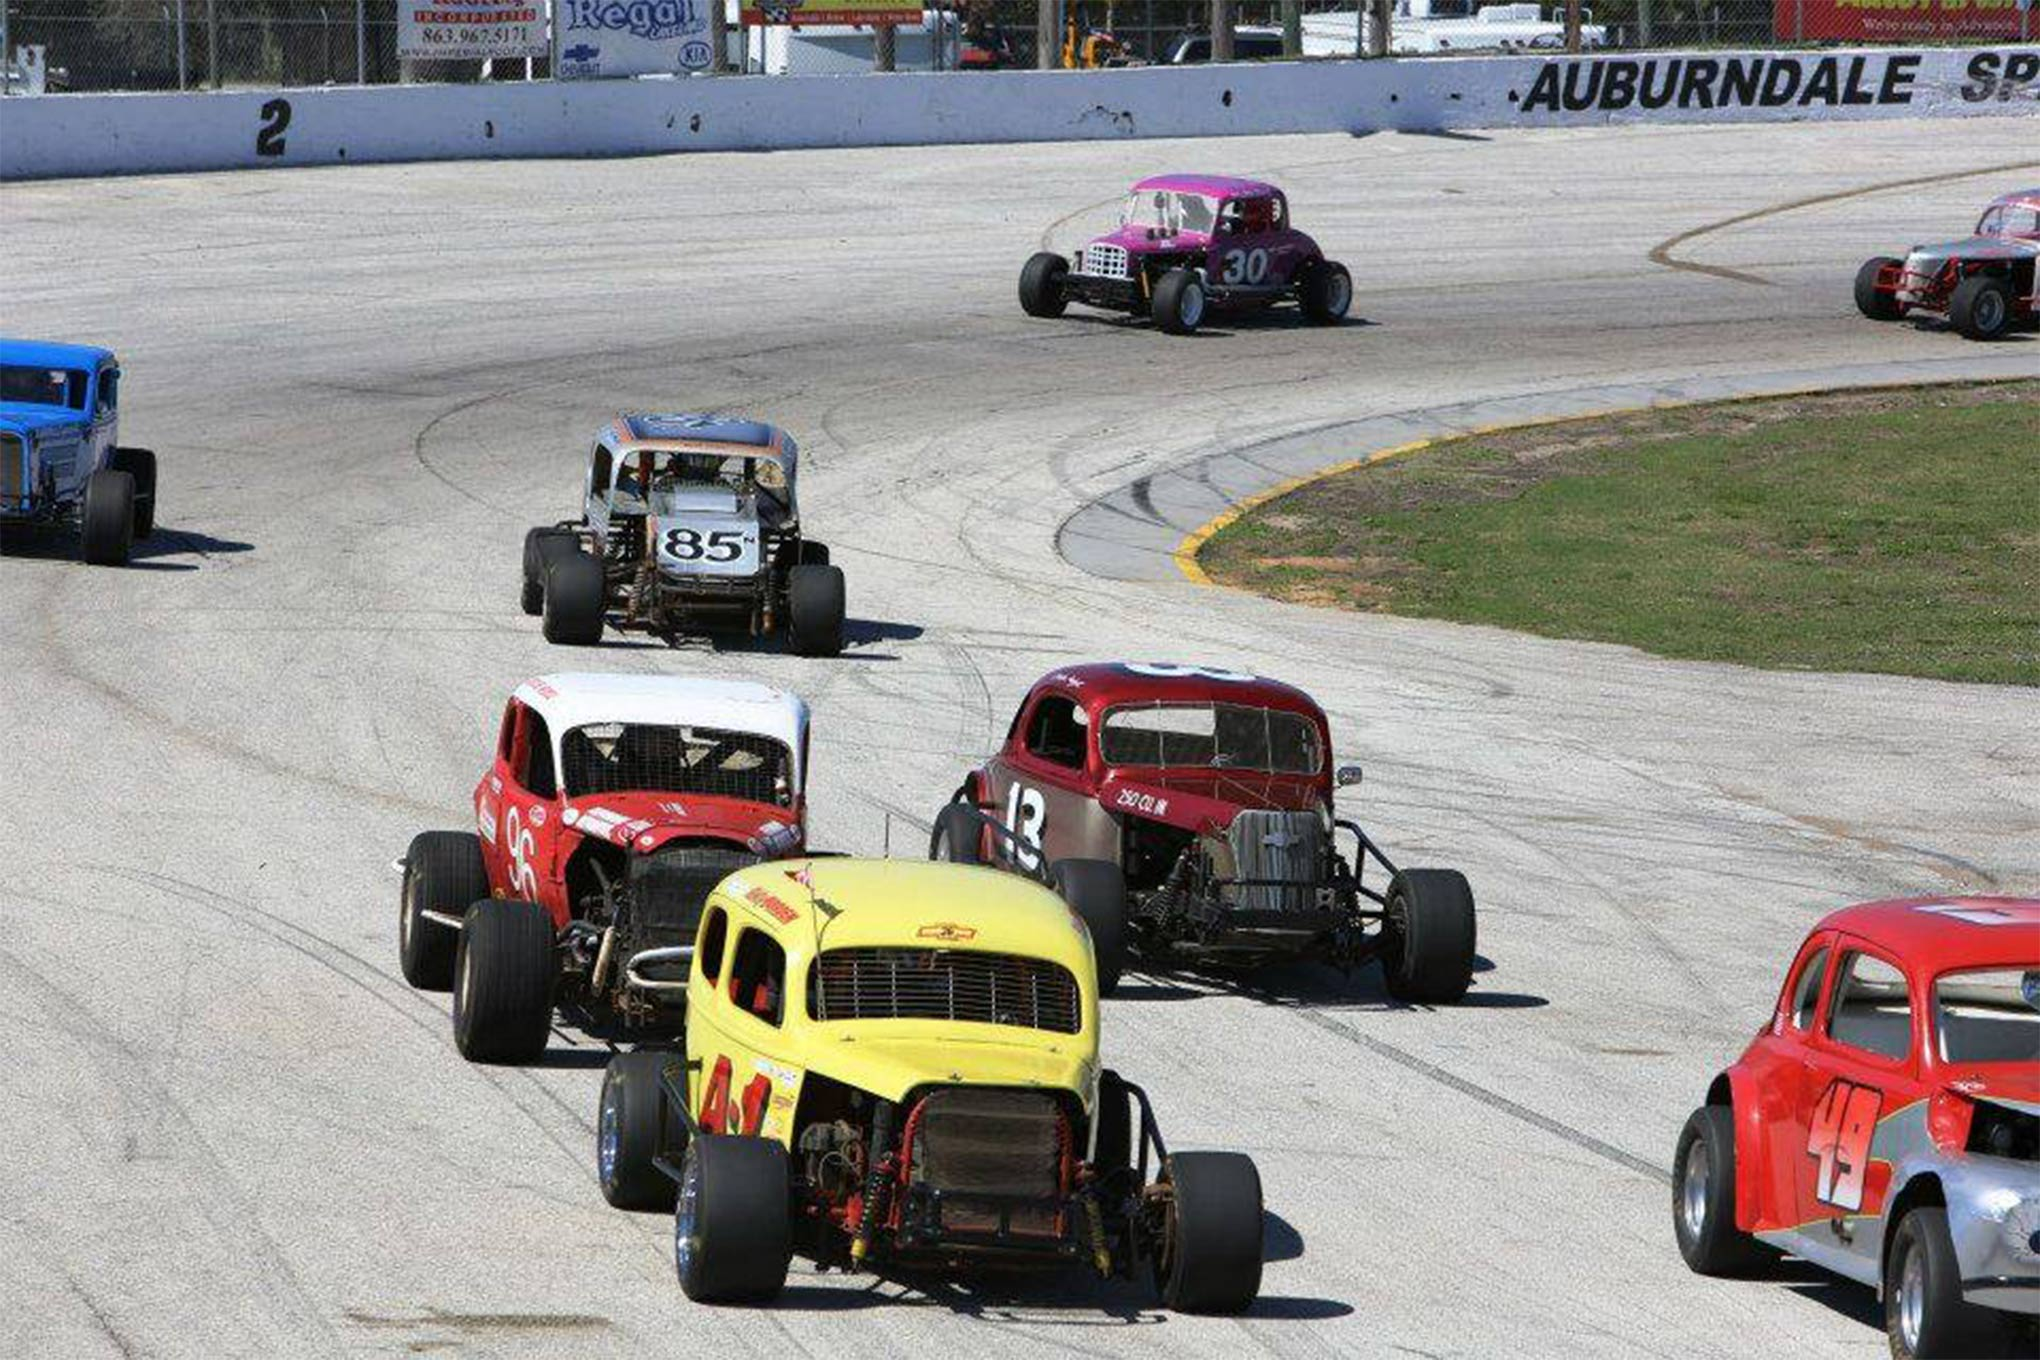 The Daytona Area Antique Racers Association in action at Auburndale Speedway in Florida